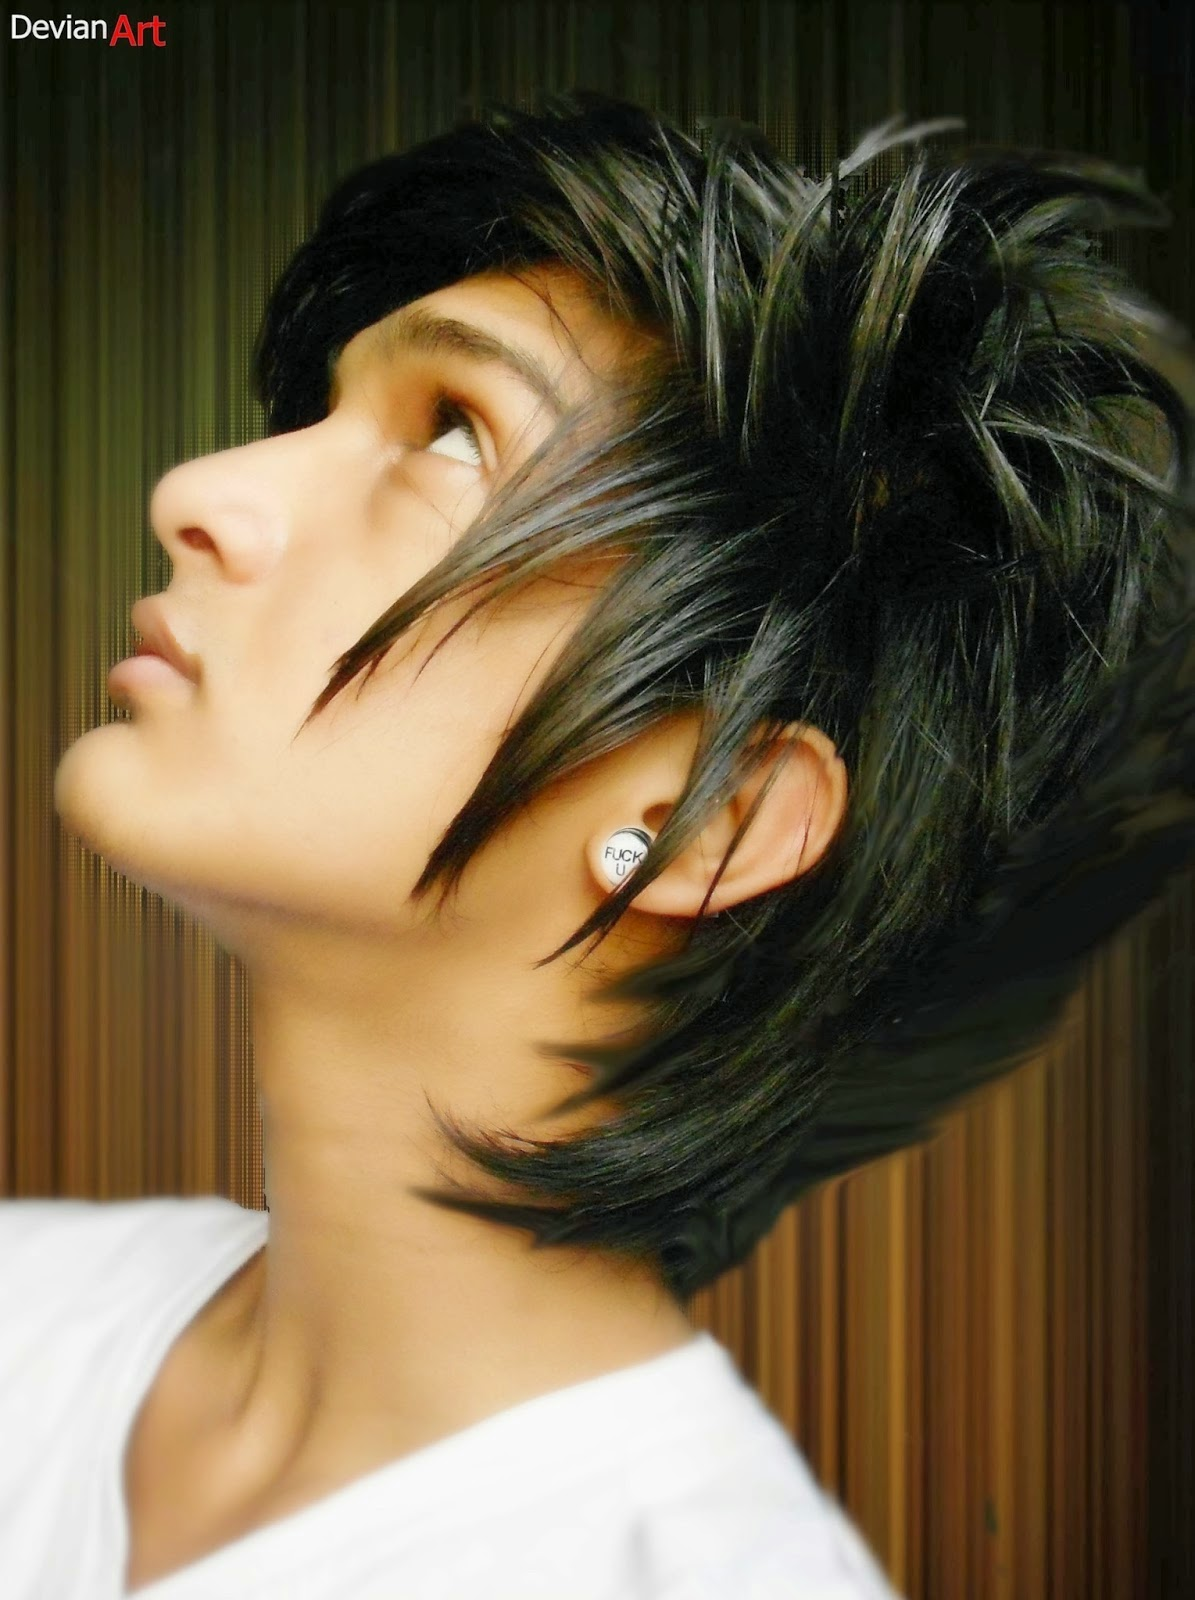 Pleasing Boys Hairstyles 2015 New Haircuts For Men And Young Boys Styles4Me Short Hairstyles For Black Women Fulllsitofus